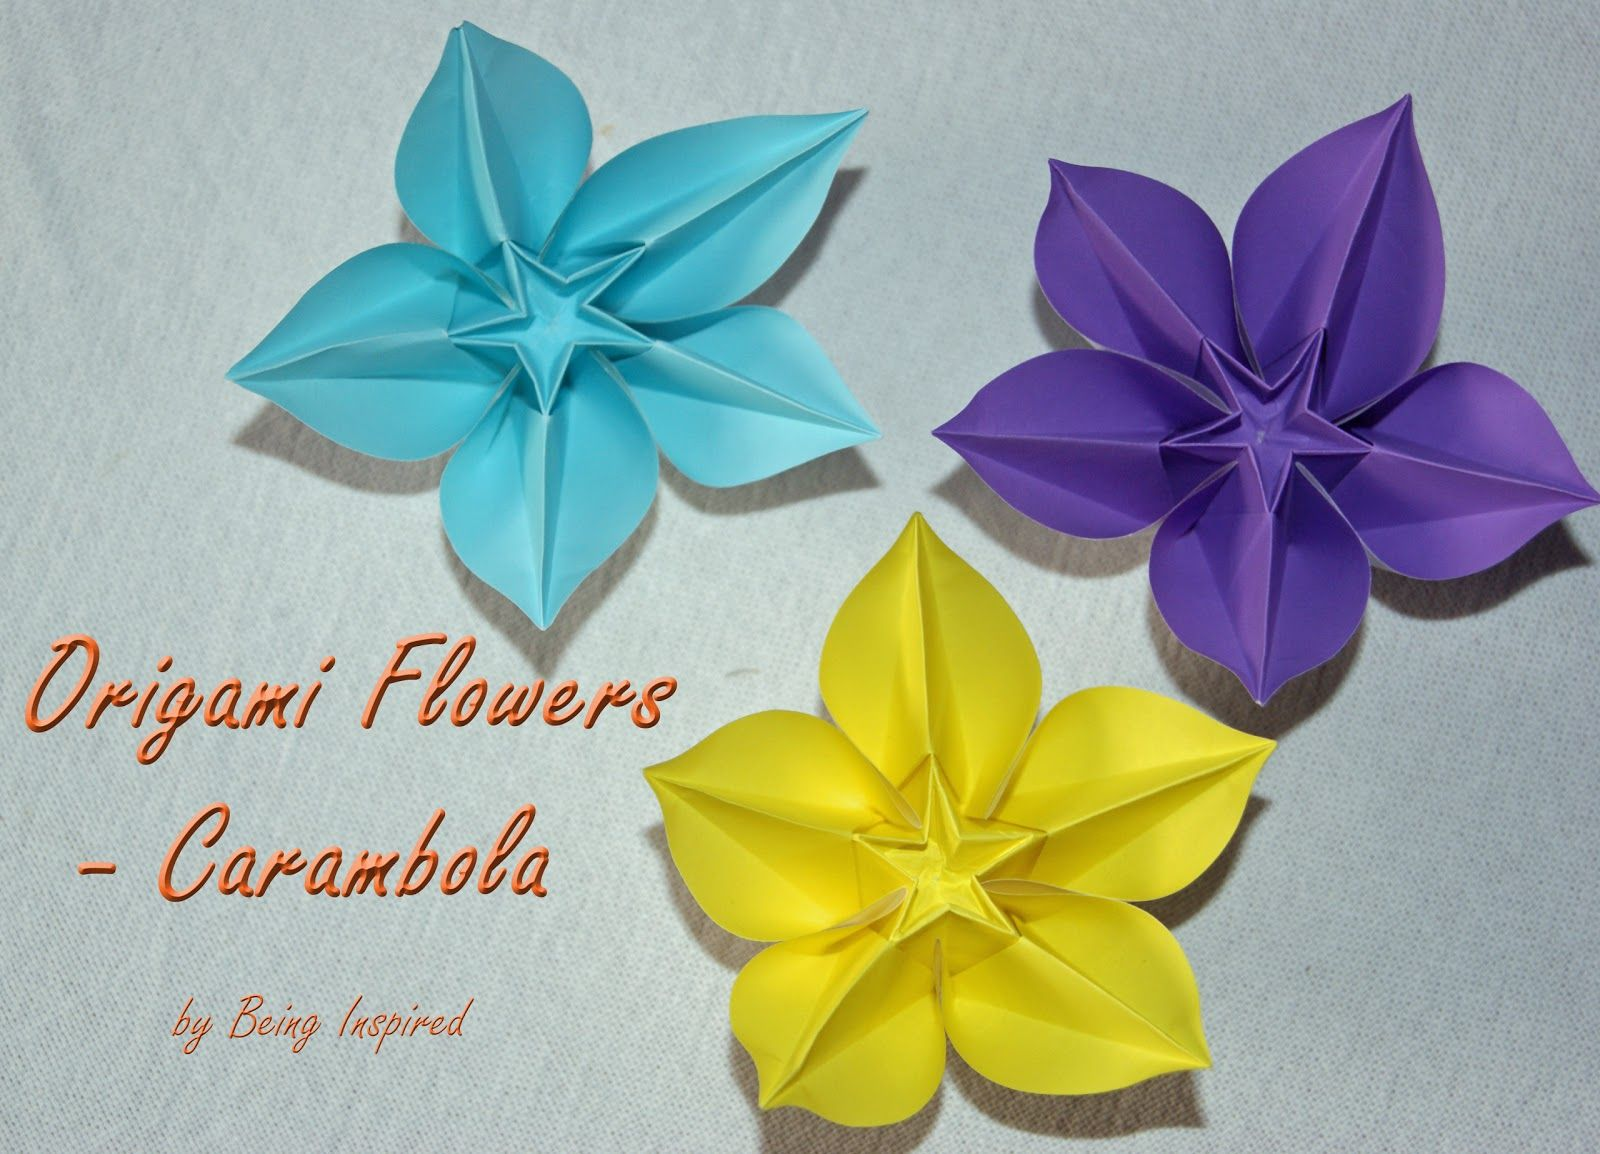 Origami flowers paper crafts pinterest origami flower and diy origami flowers mightylinksfo